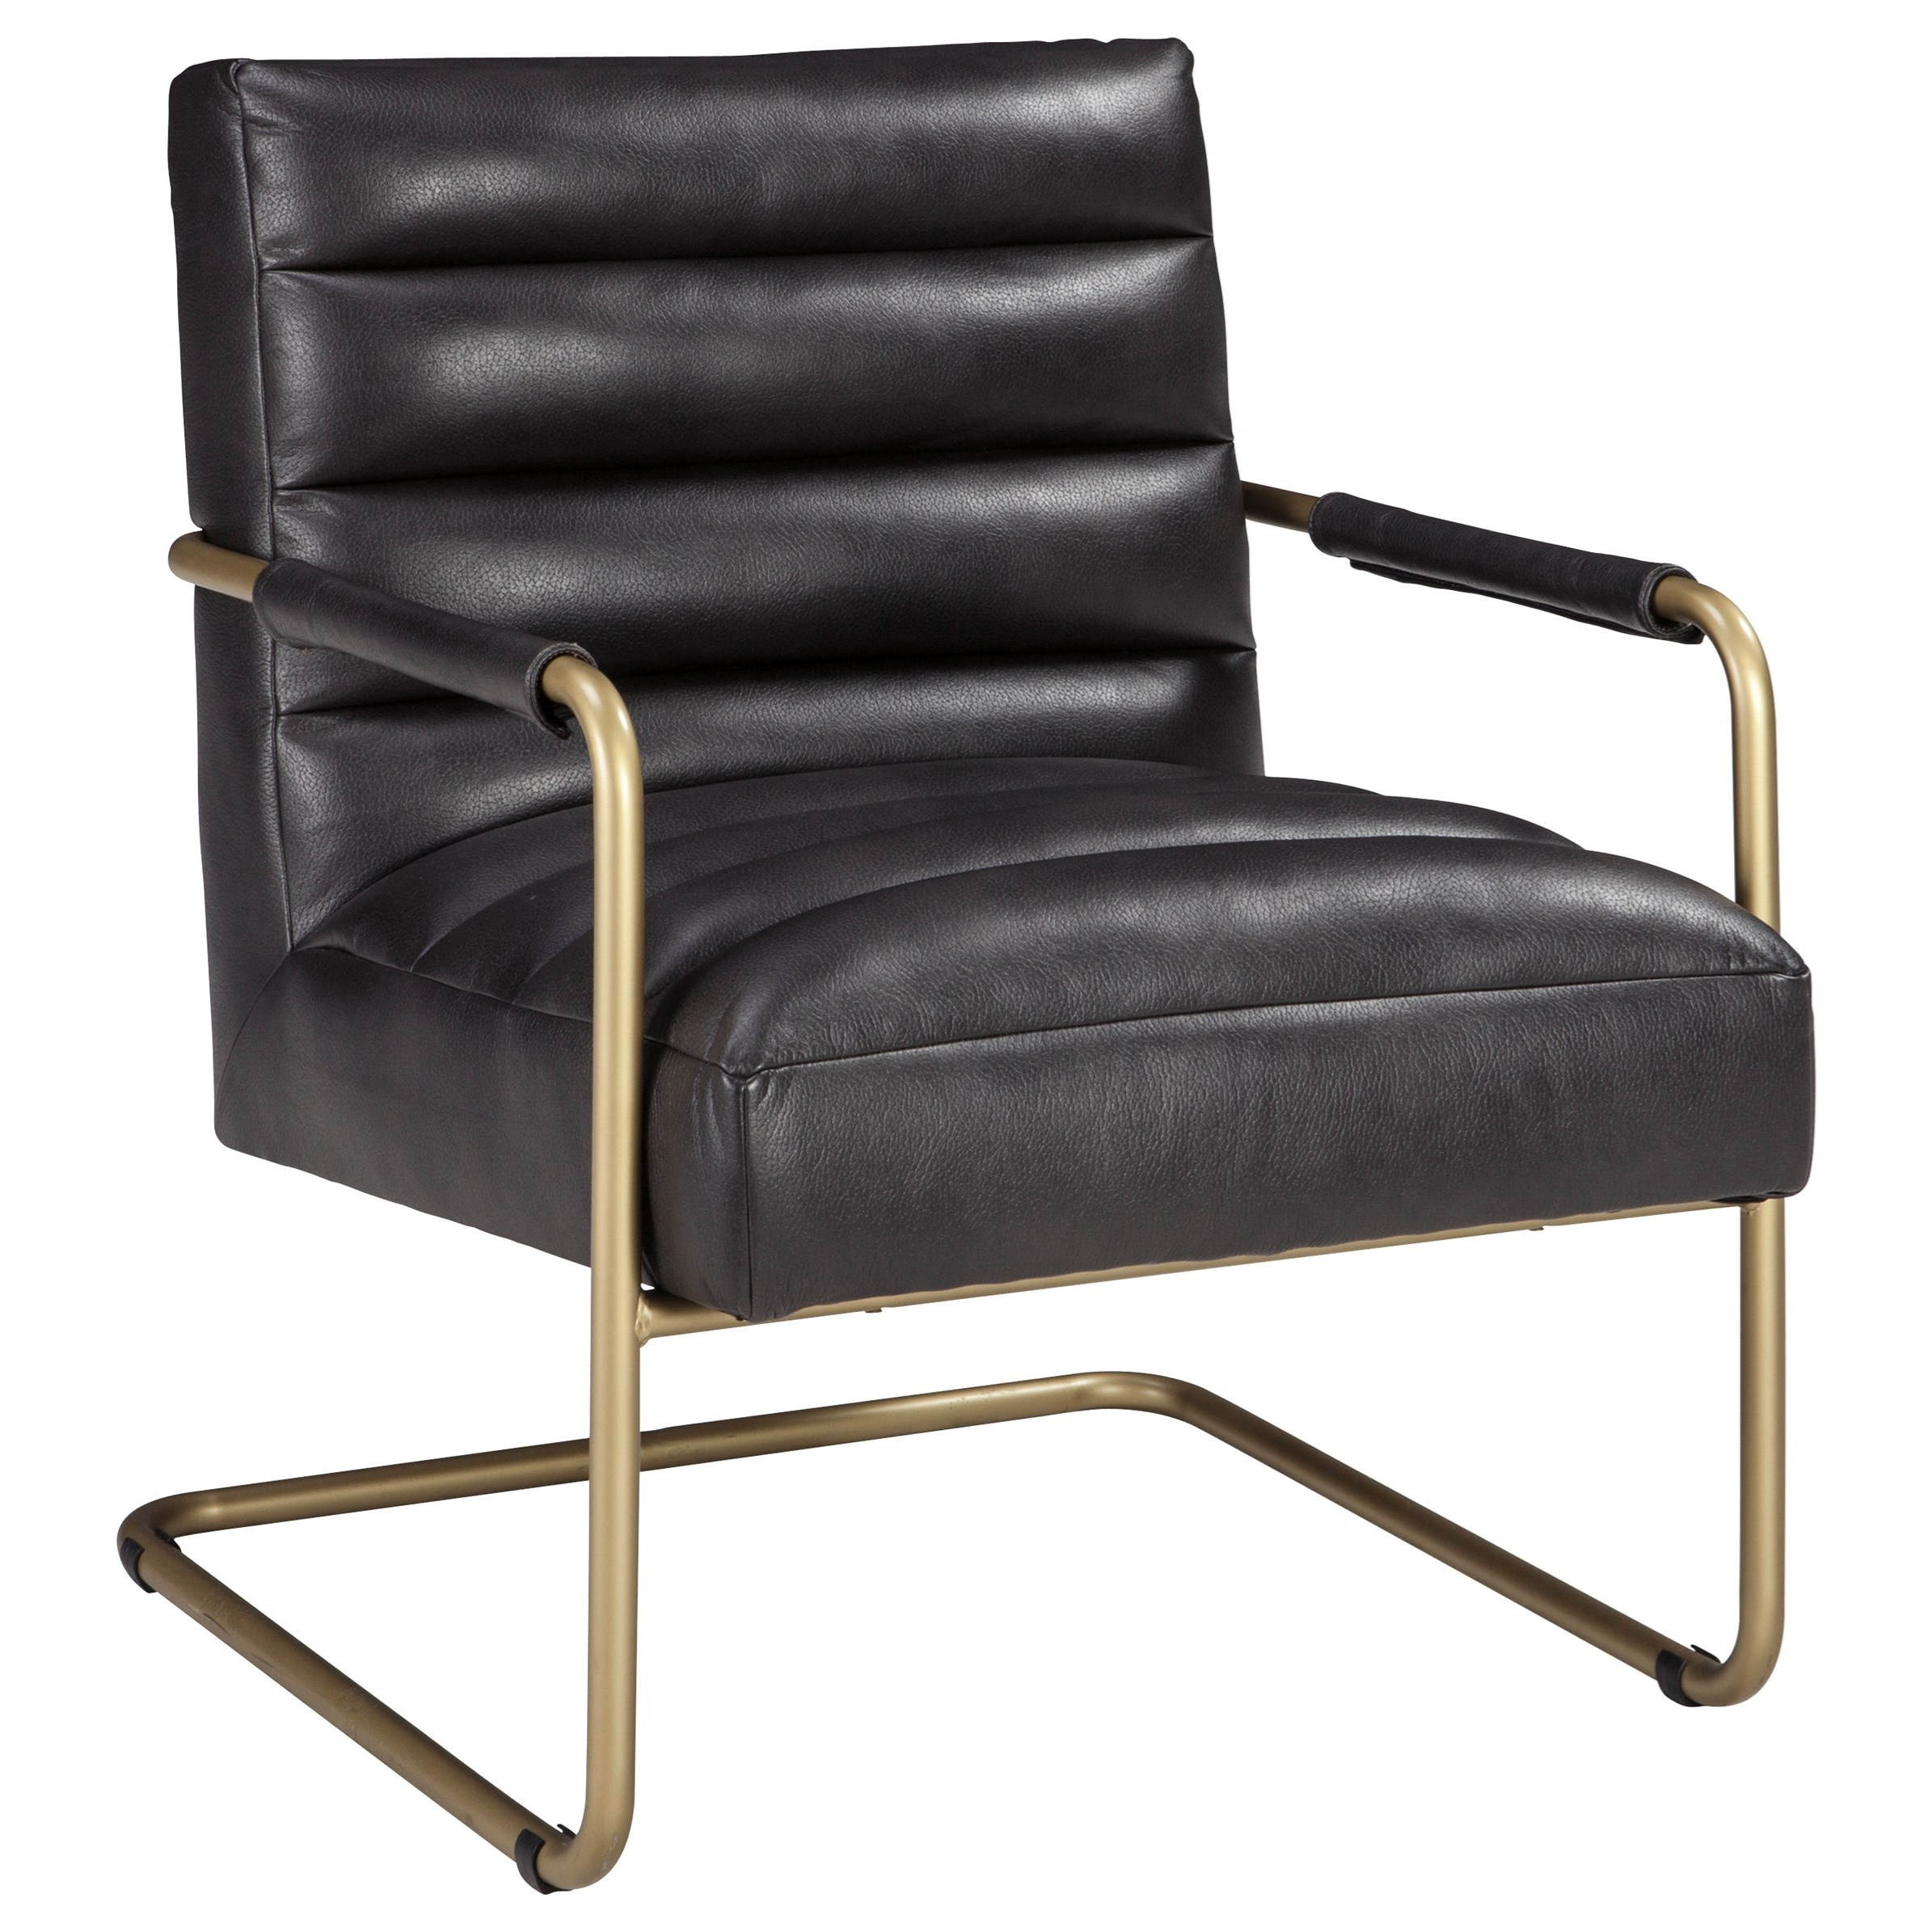 signature design by ashley hackley a3000024 gold finish metal arm accent chair with black faux. Black Bedroom Furniture Sets. Home Design Ideas